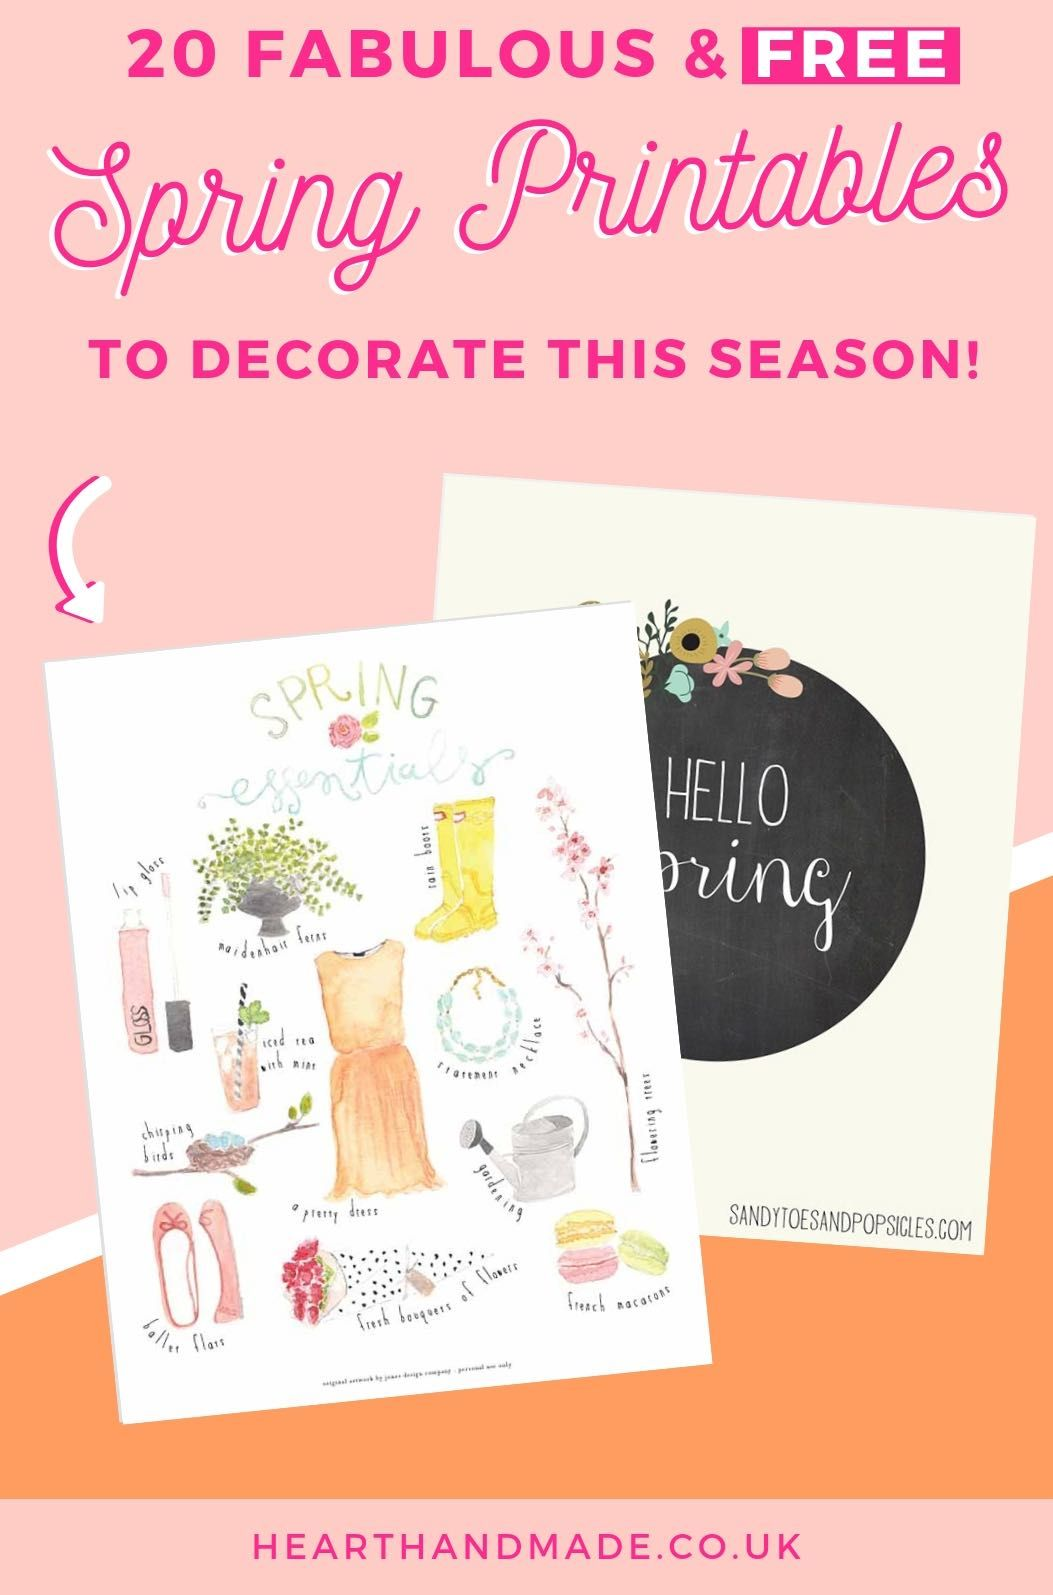 Art Decorating And Crafting 20 Fabulous Free Spring Printables Craft Ideas Diy Home Decor